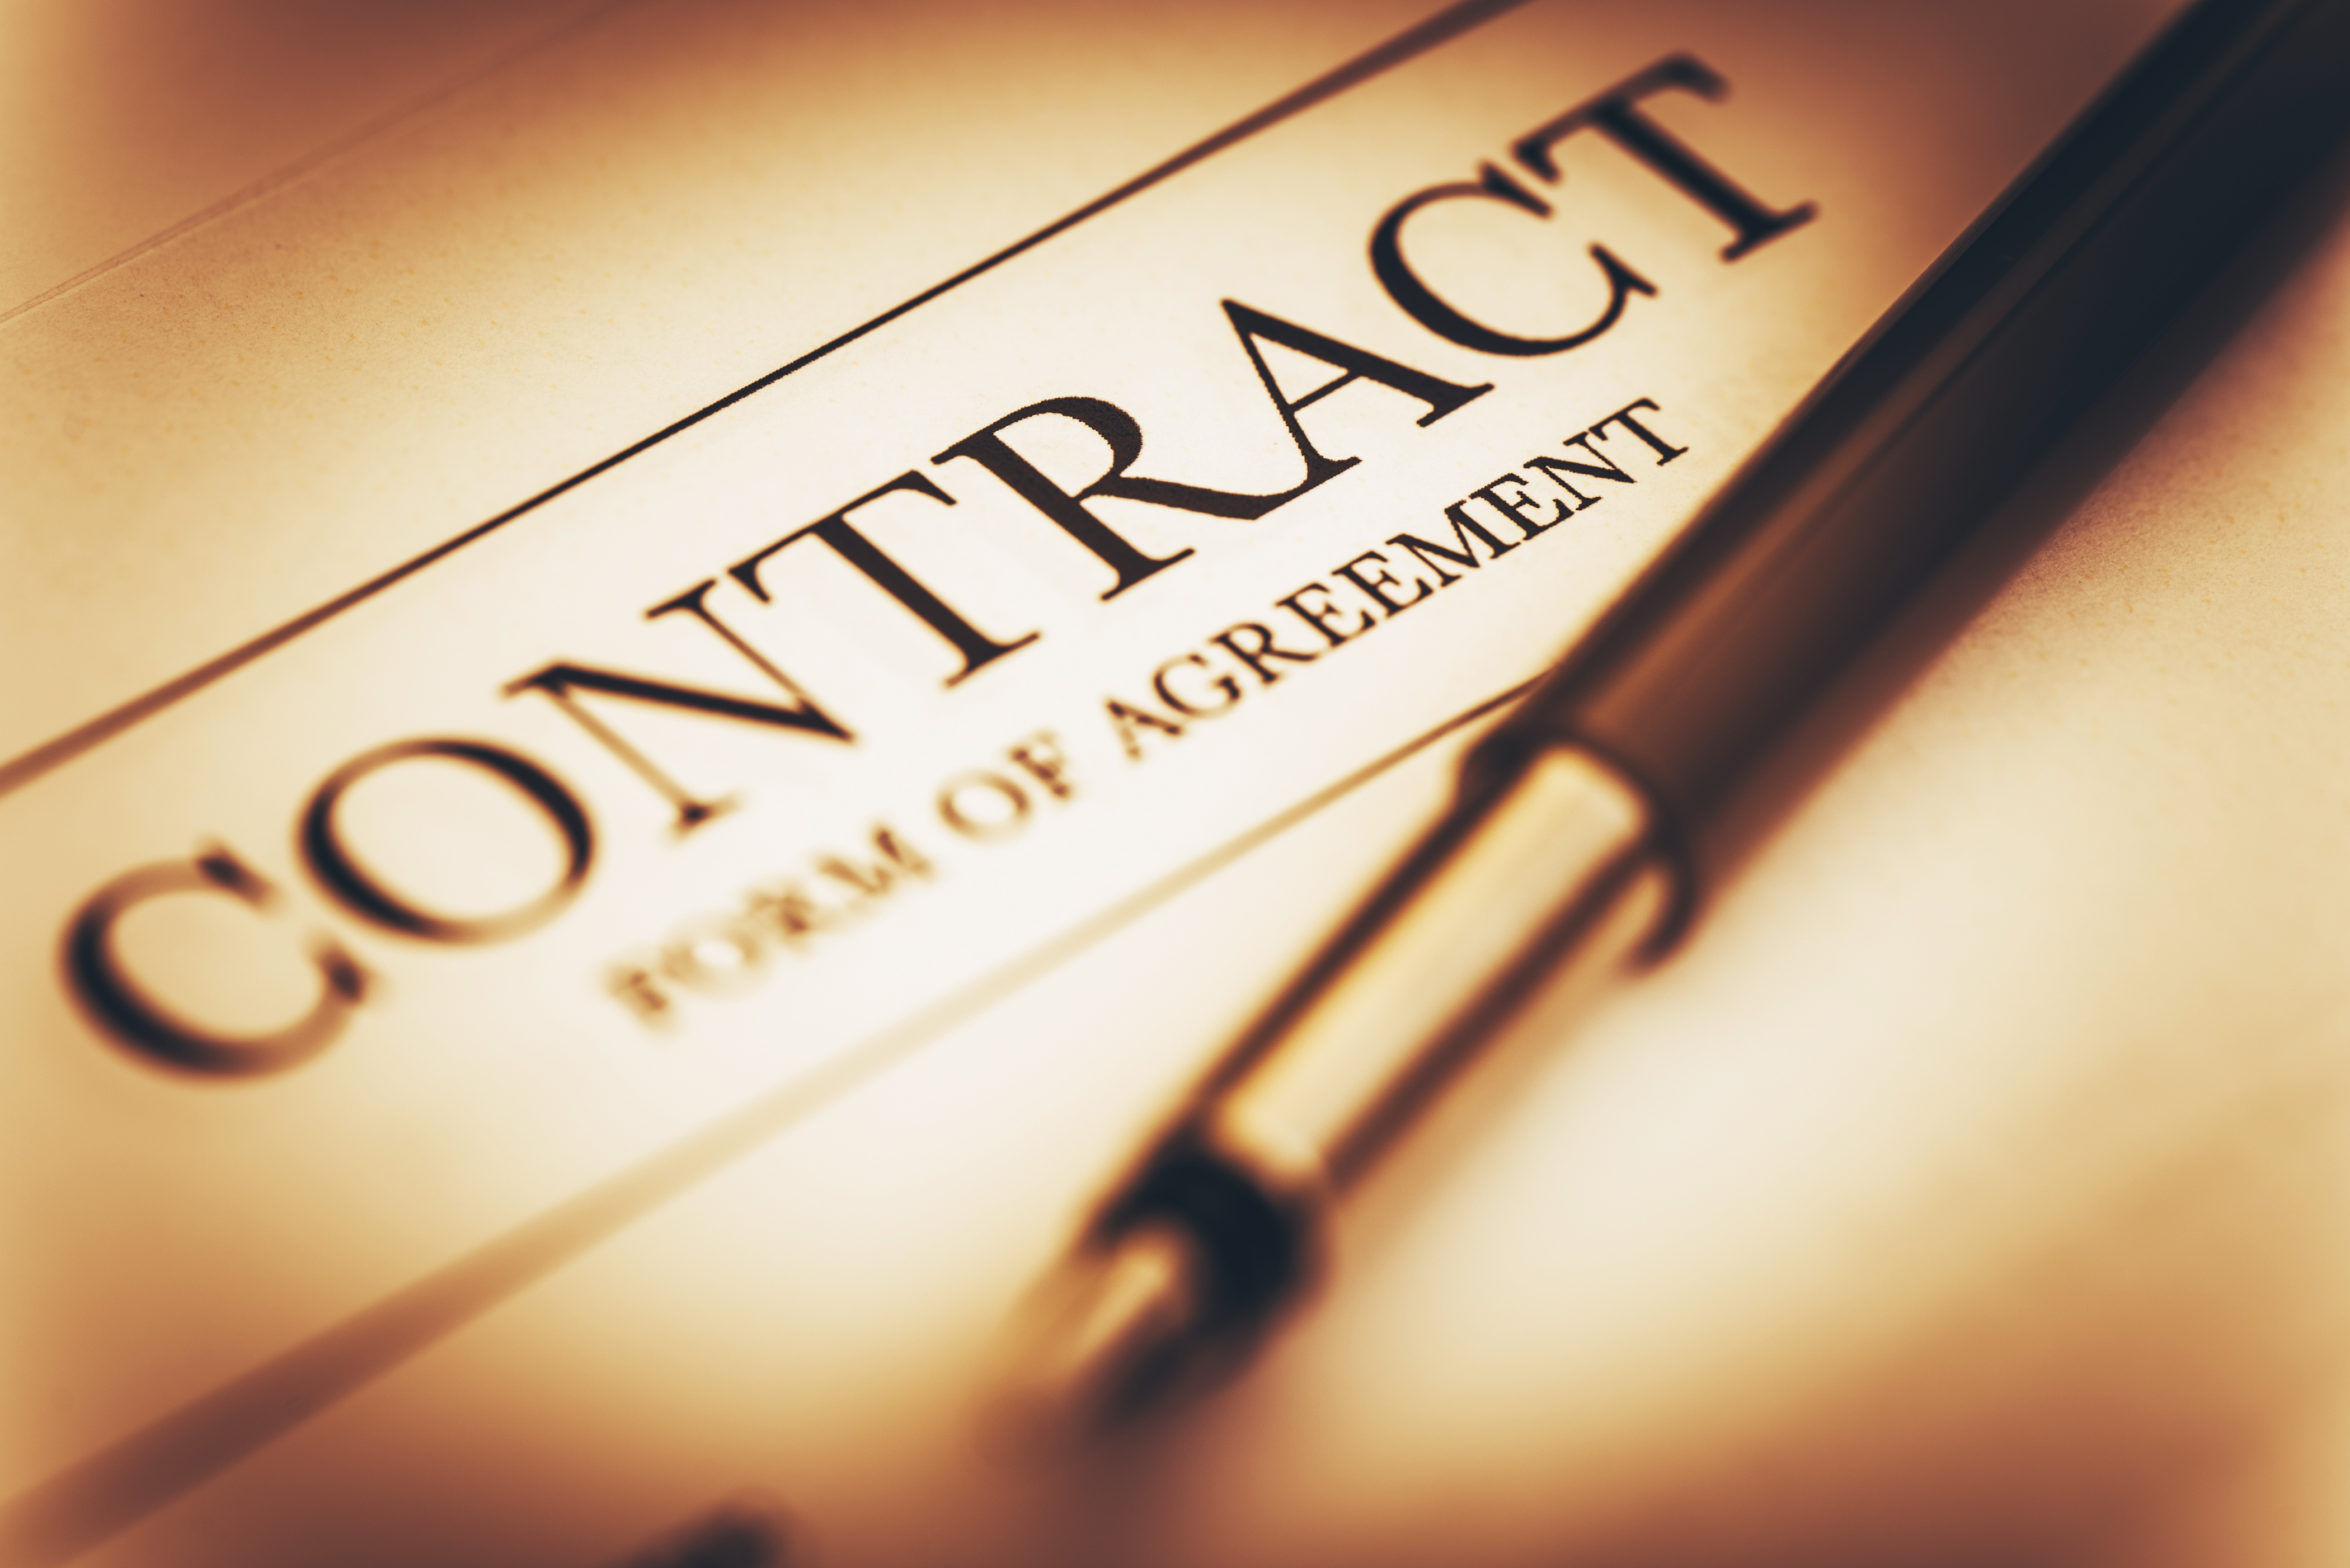 Contract | Maximize Your Summer Experience And Minimize Conflict With Clear